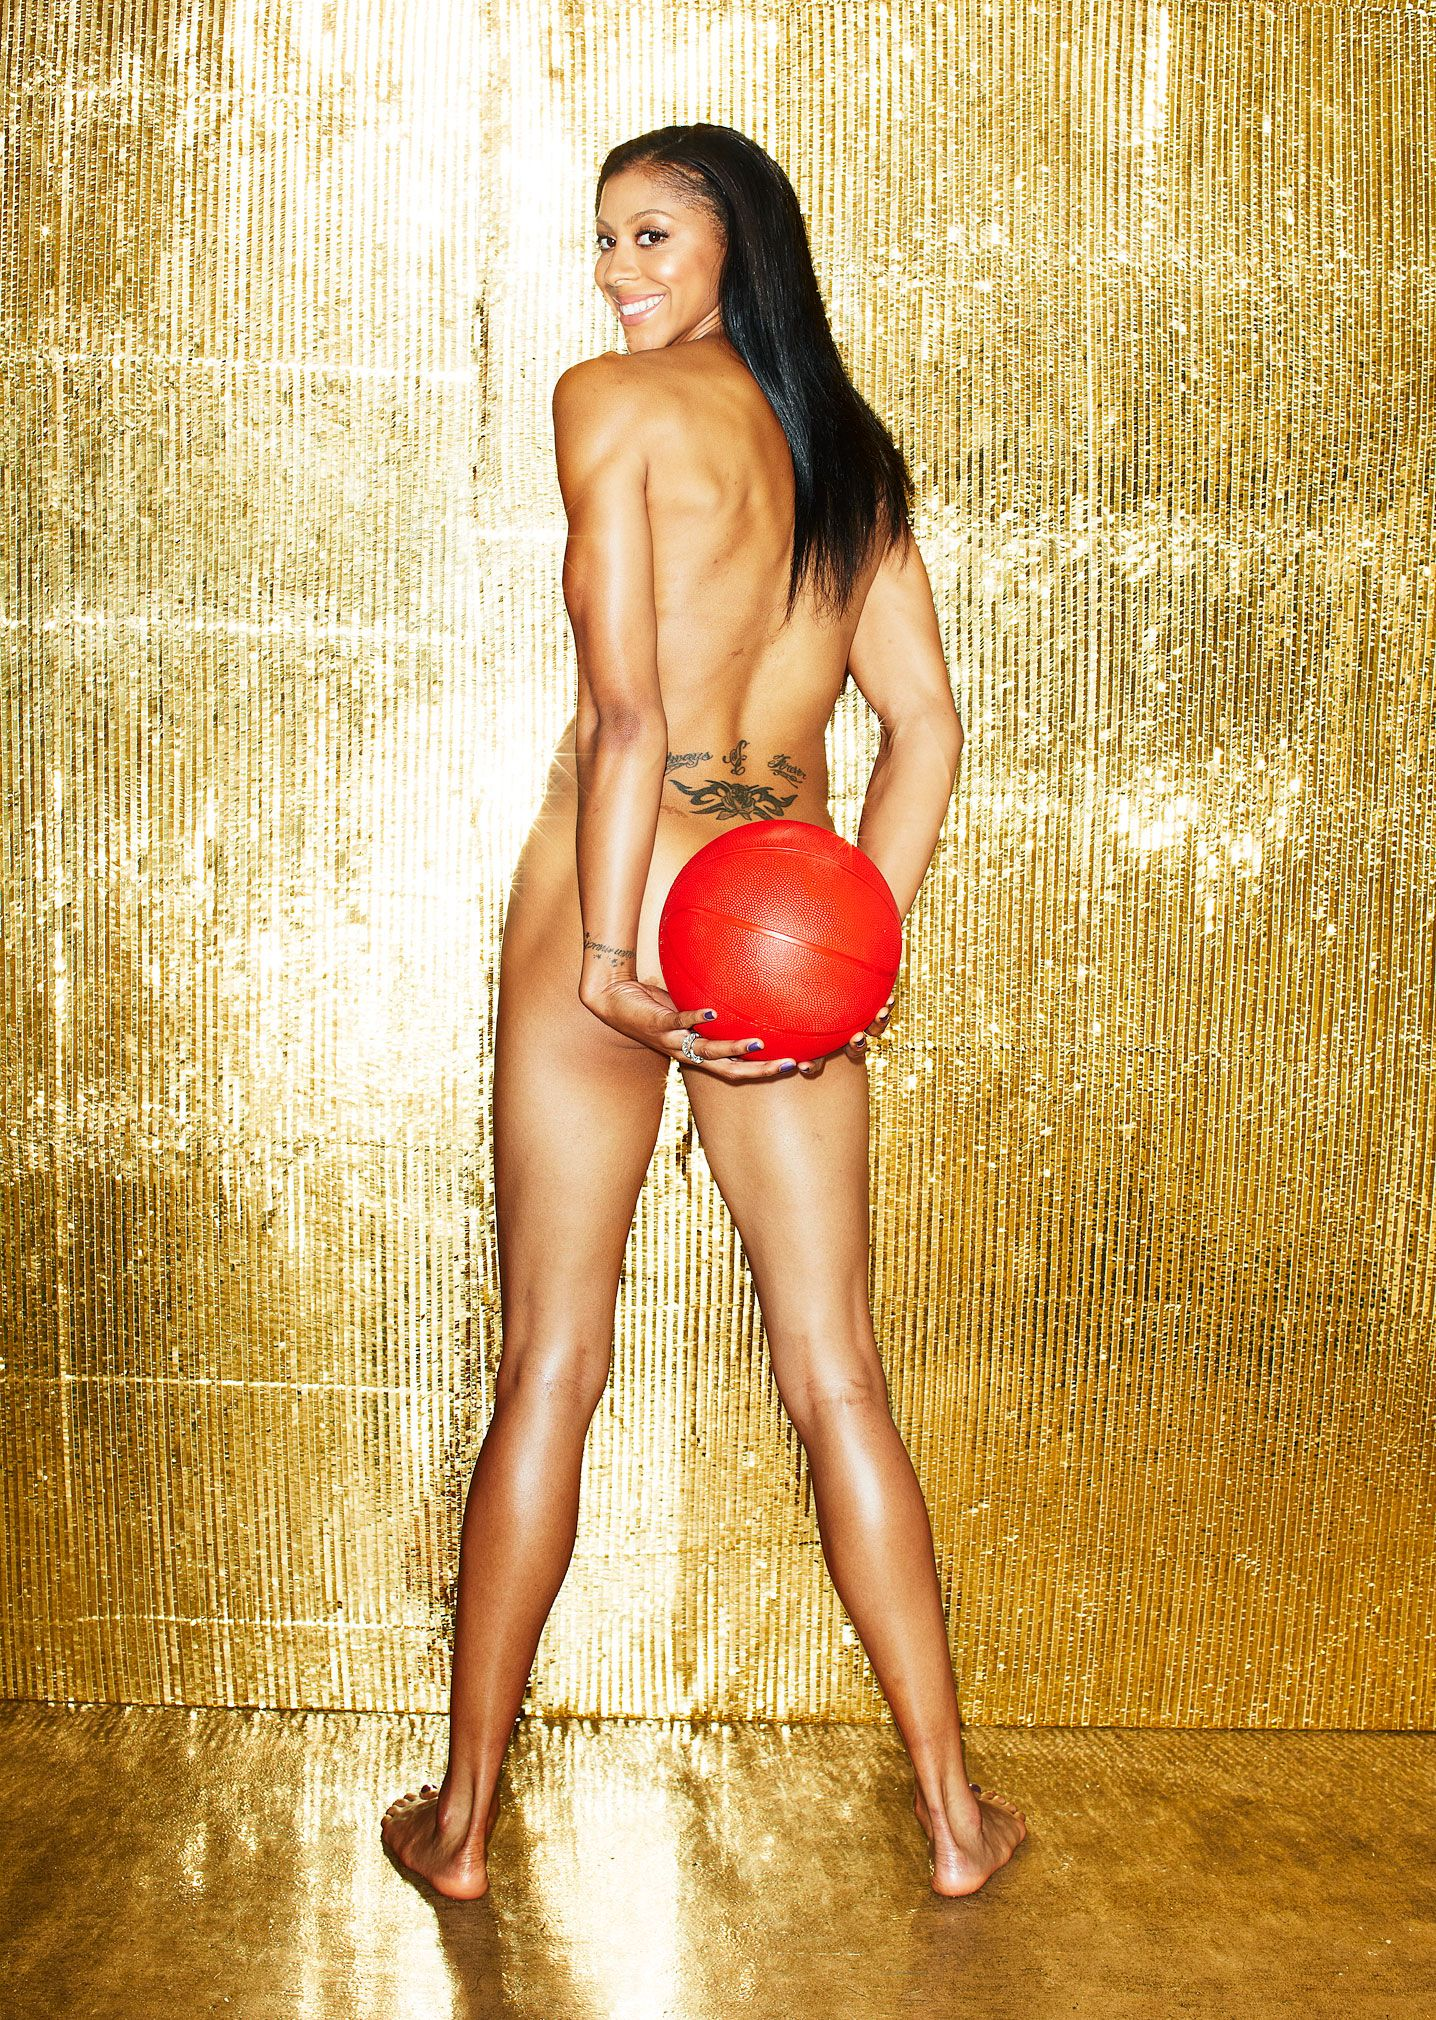 issue Candace parker espn body